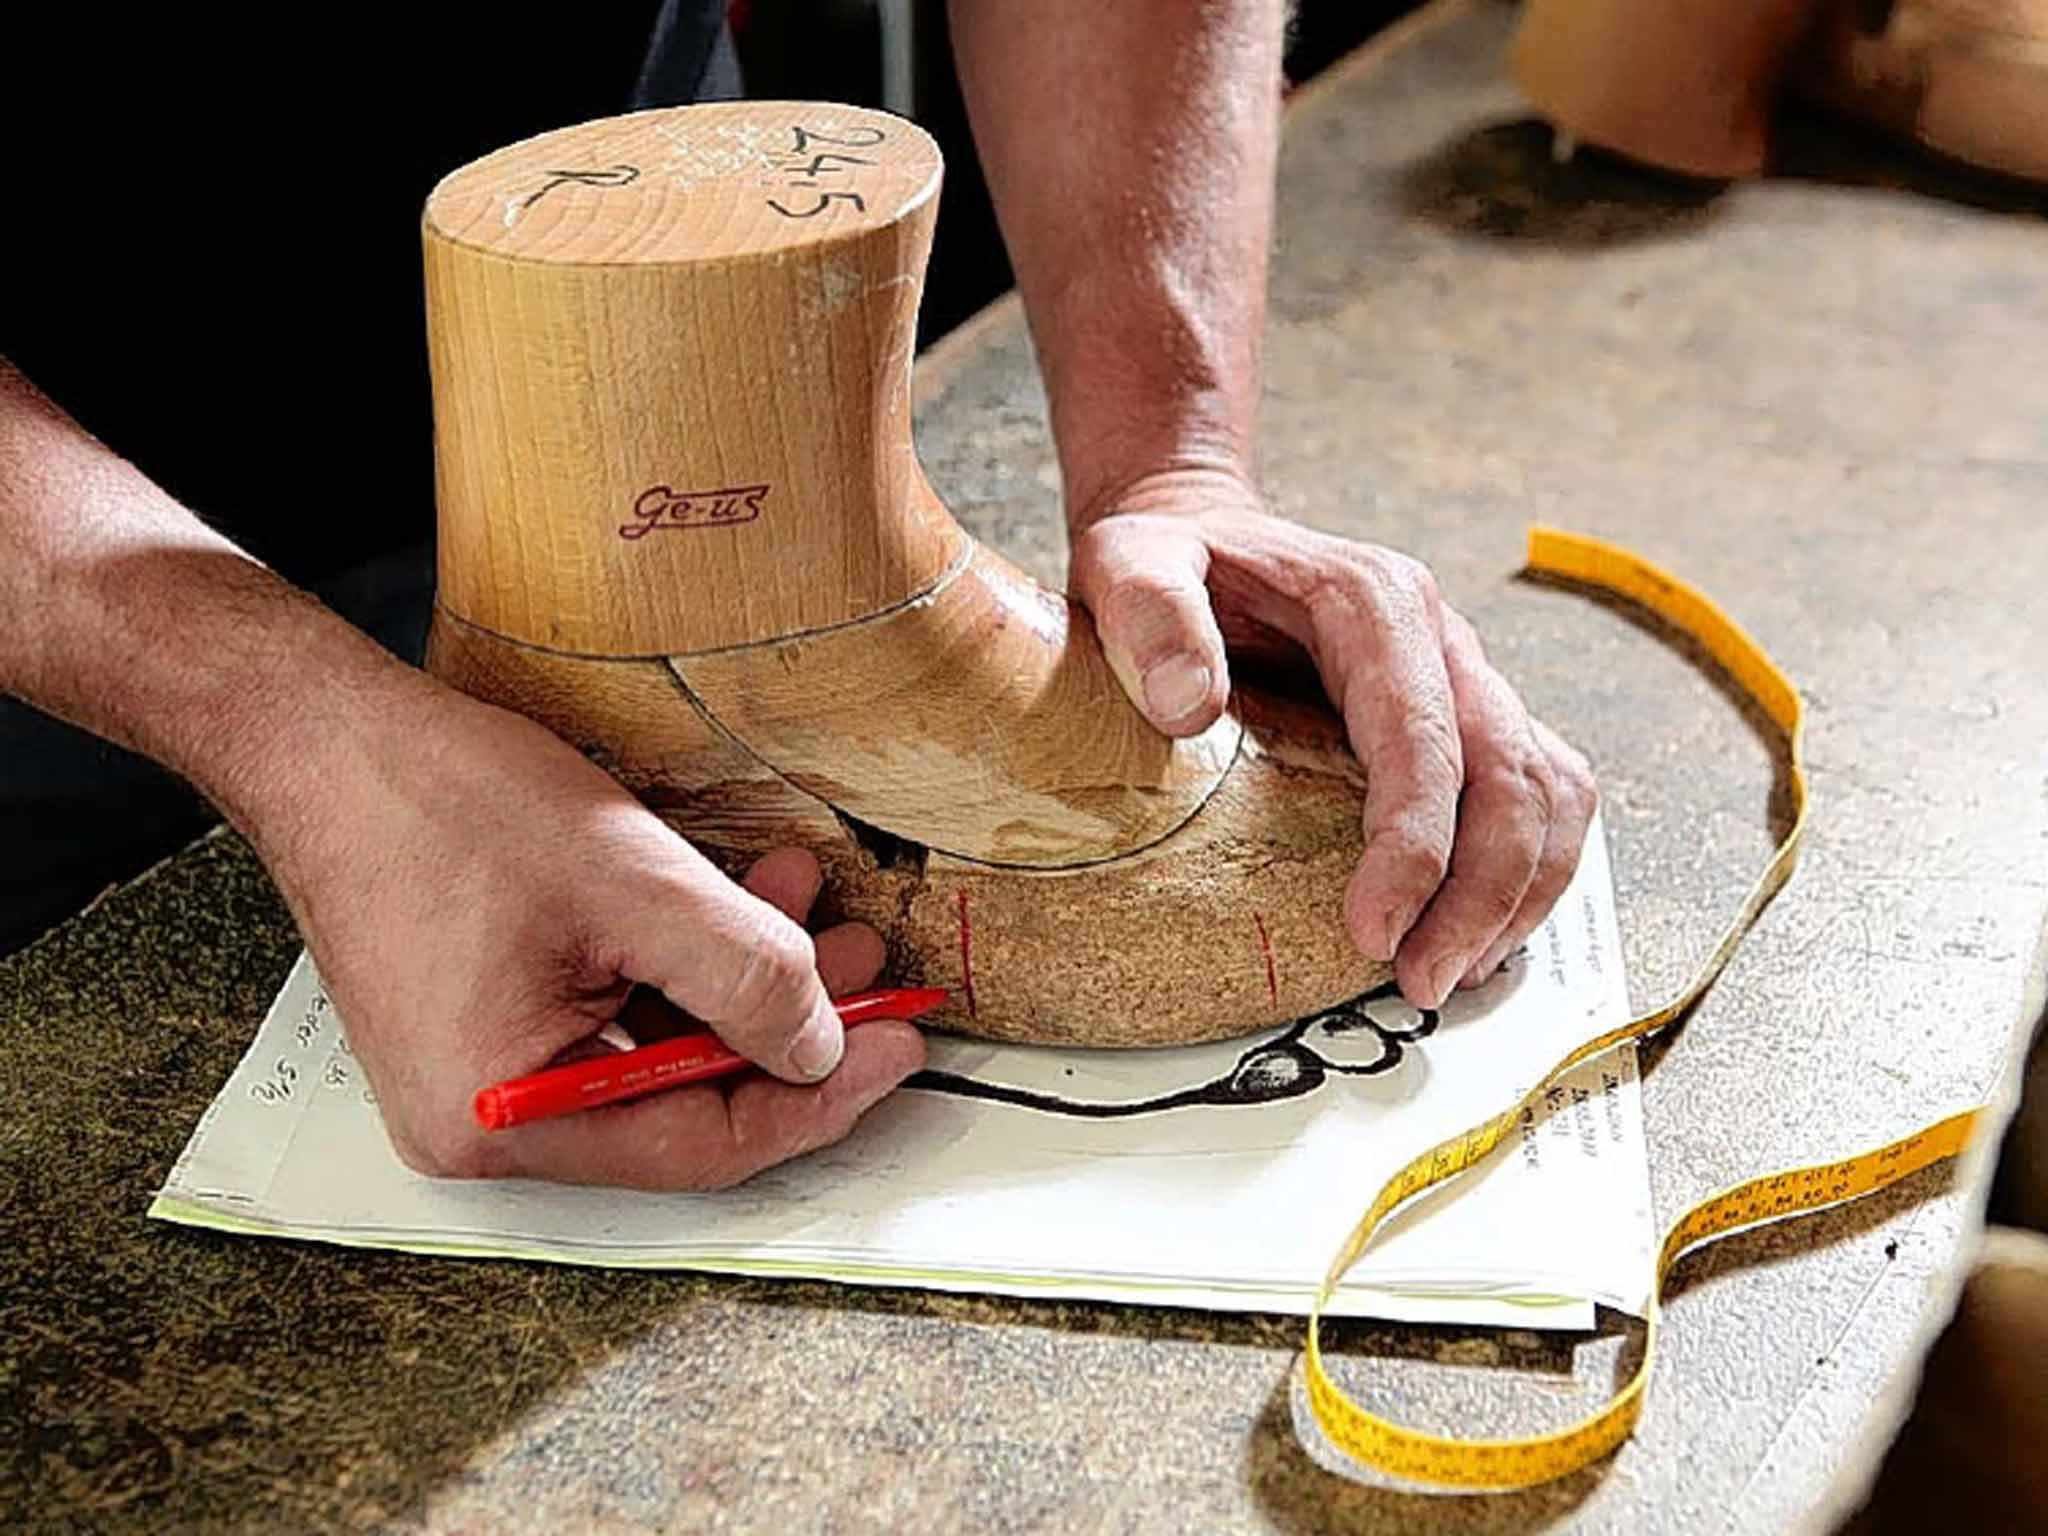 Ski boots: Bespoke comfort | The Independent